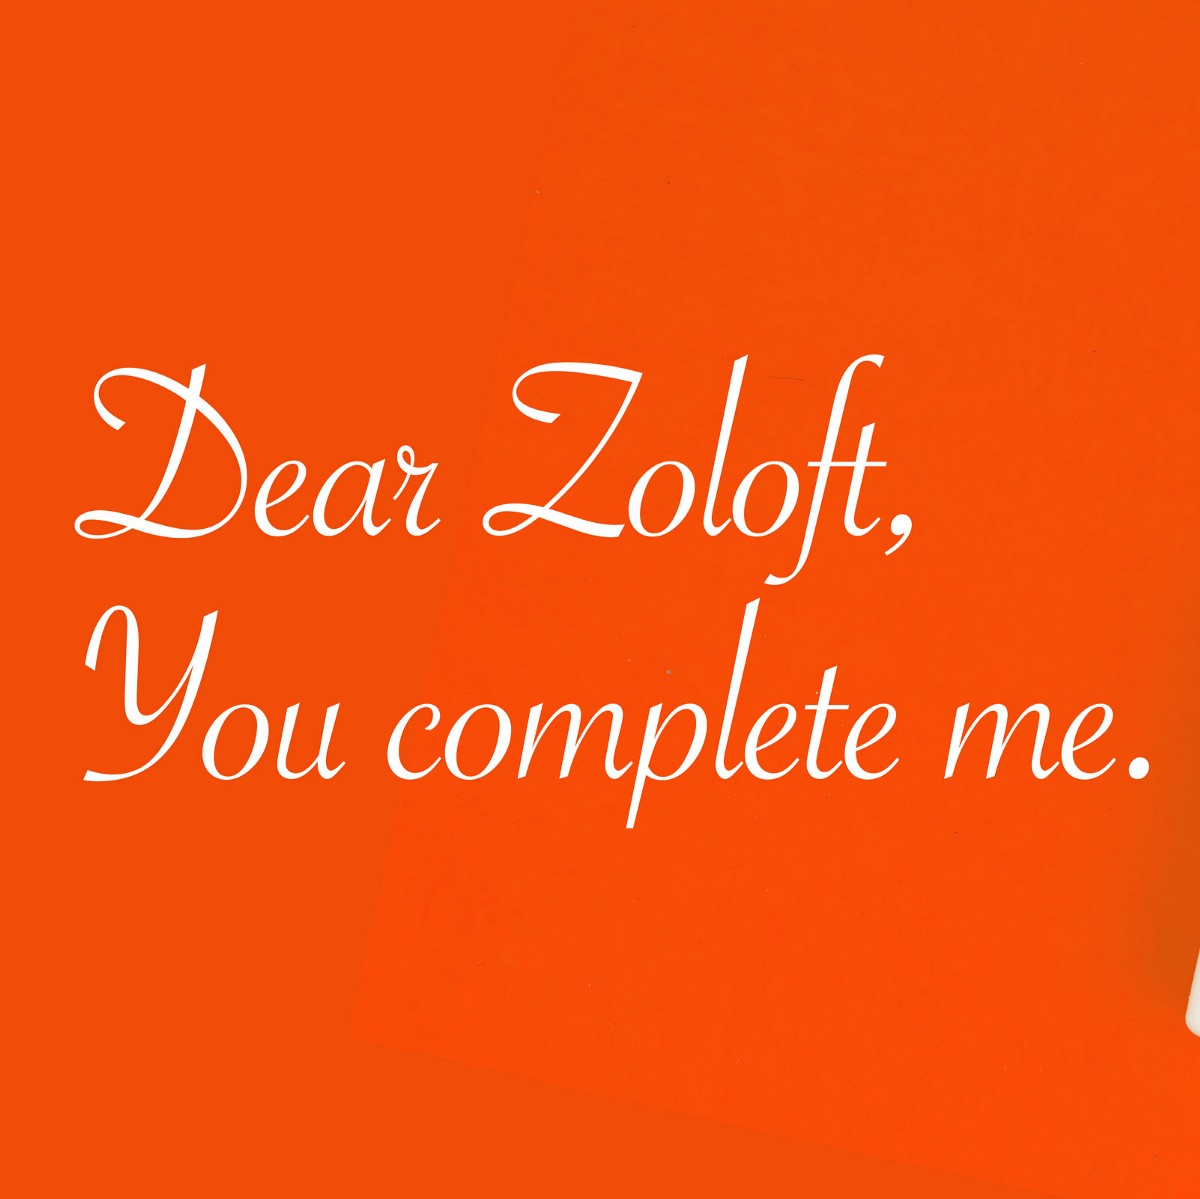 All I Want for Christmas Is Zoloft